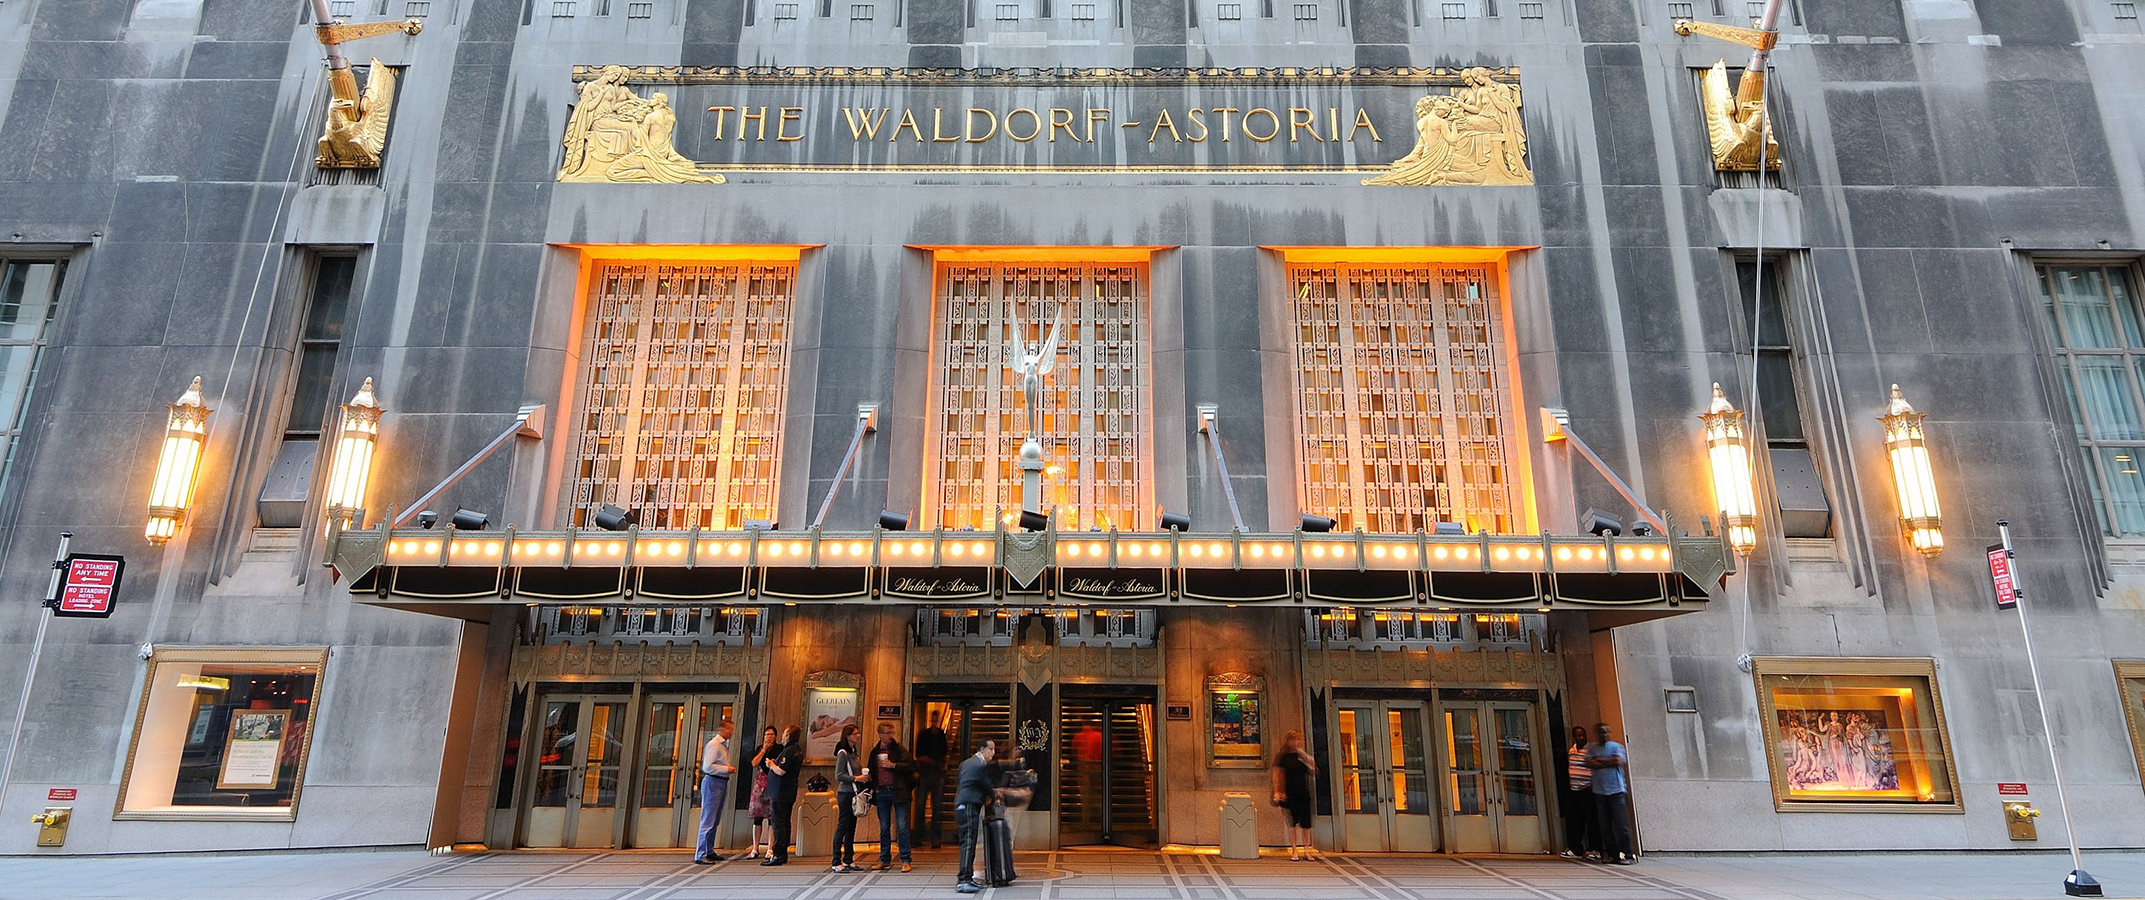 China 39 s anbang insurance to acquire waldorf astoria for for Hotel new astoria